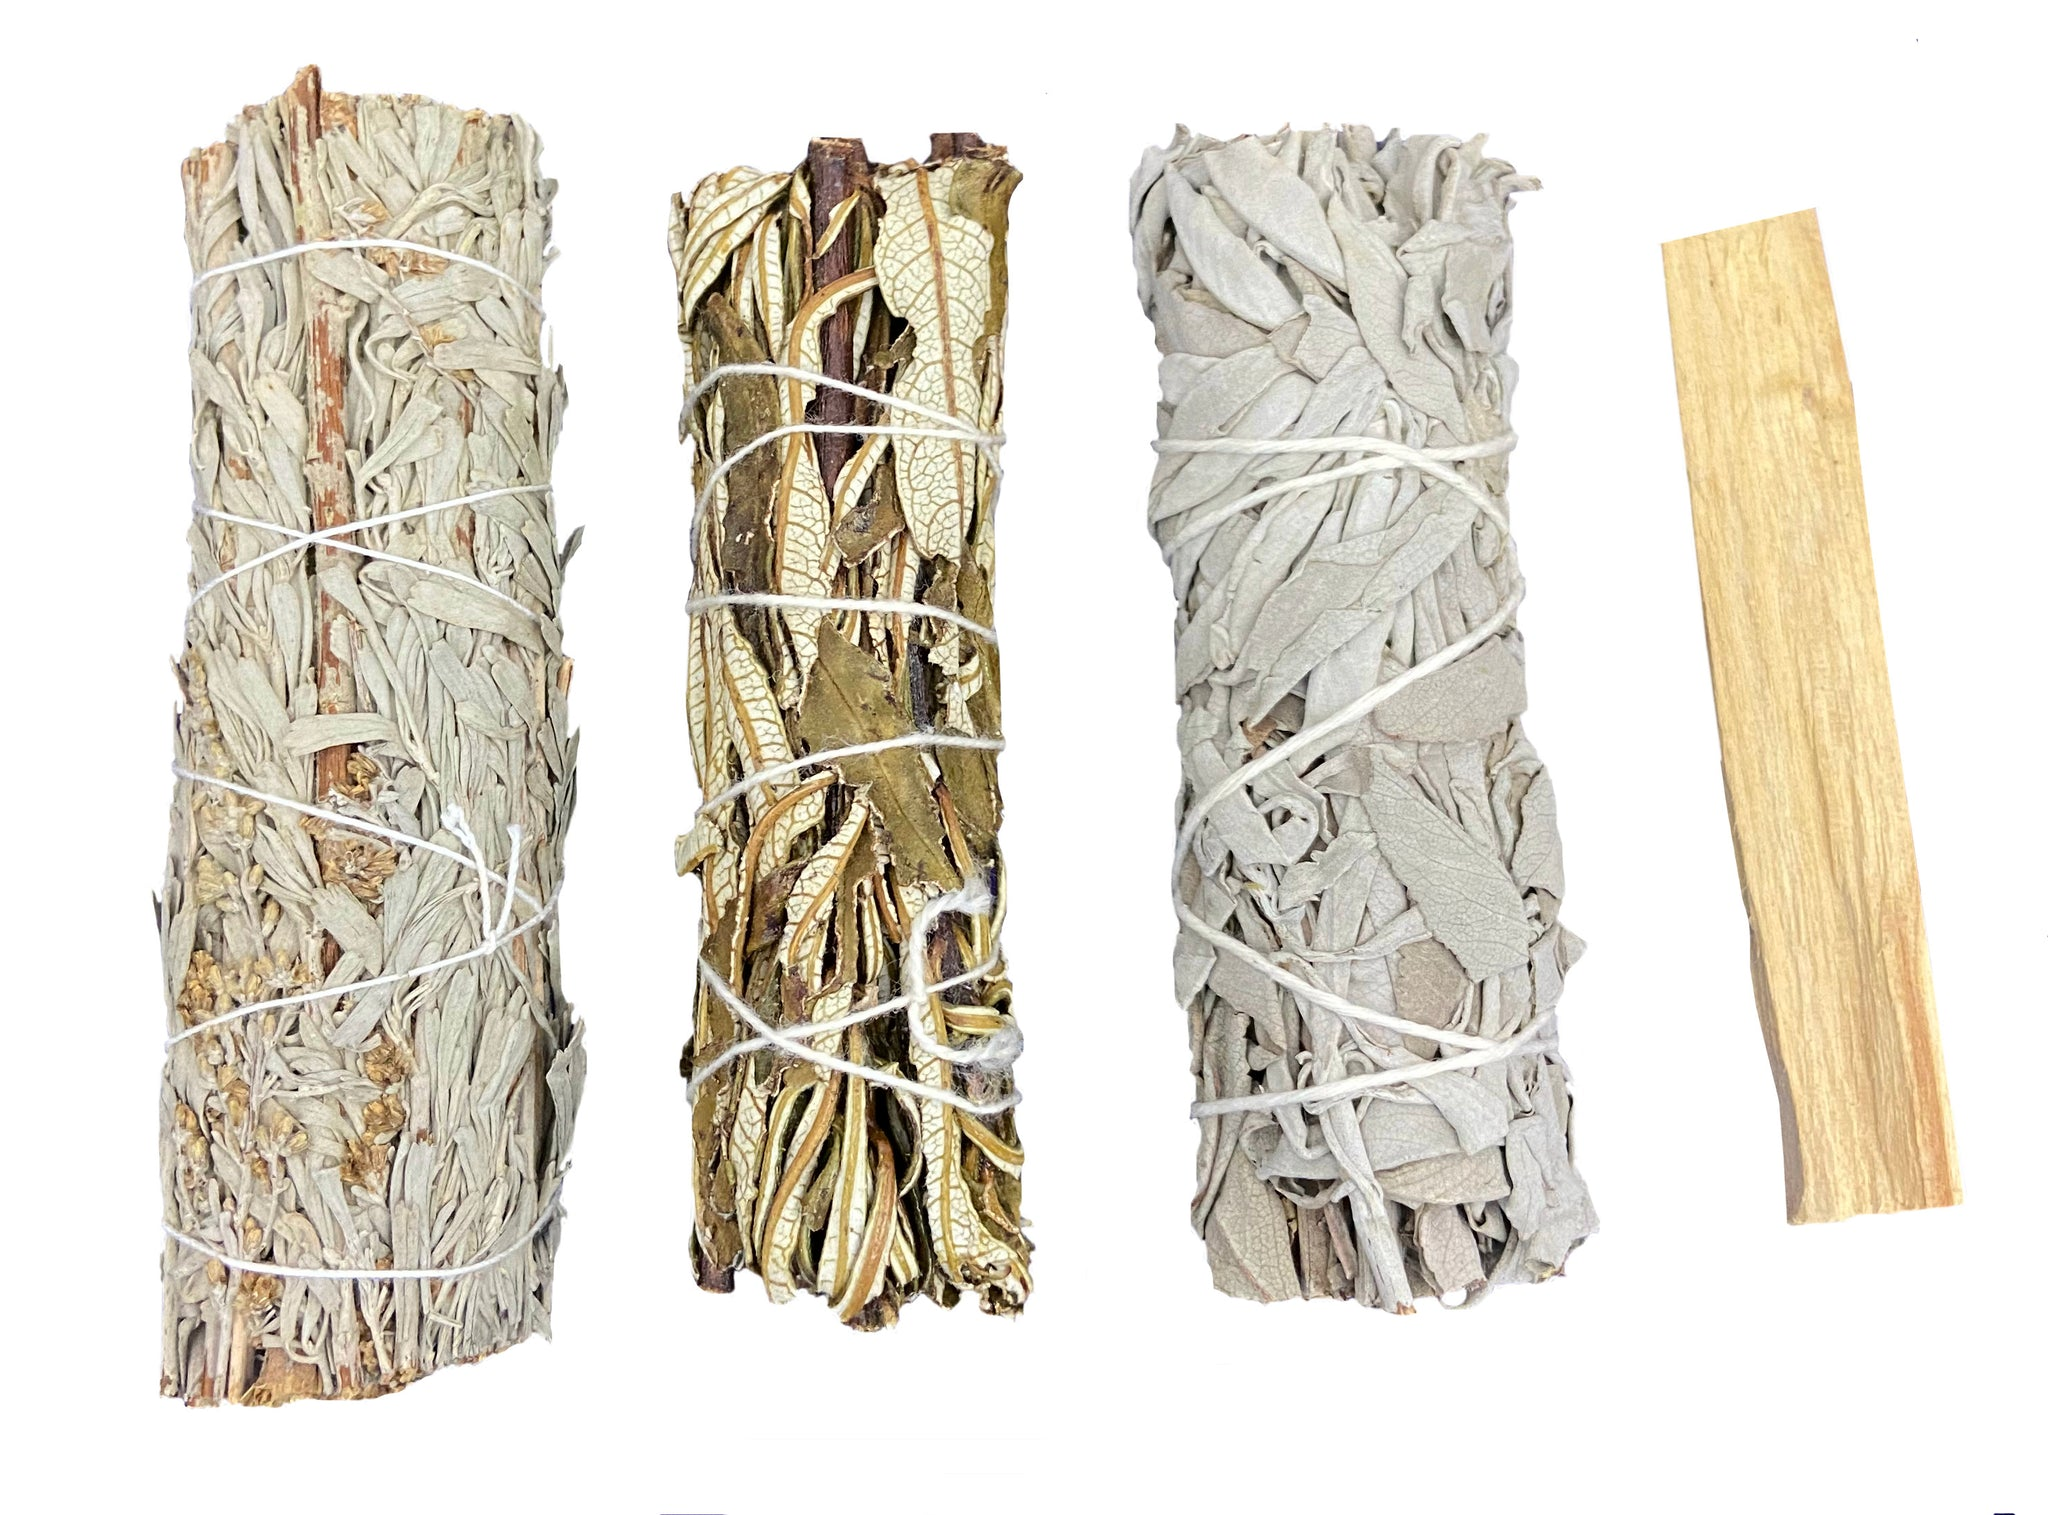 Smudge Kit Sampler - White Sage, Blue Sage, Yerba Santa, & Palo Santo Wood - Each provides its own special properties